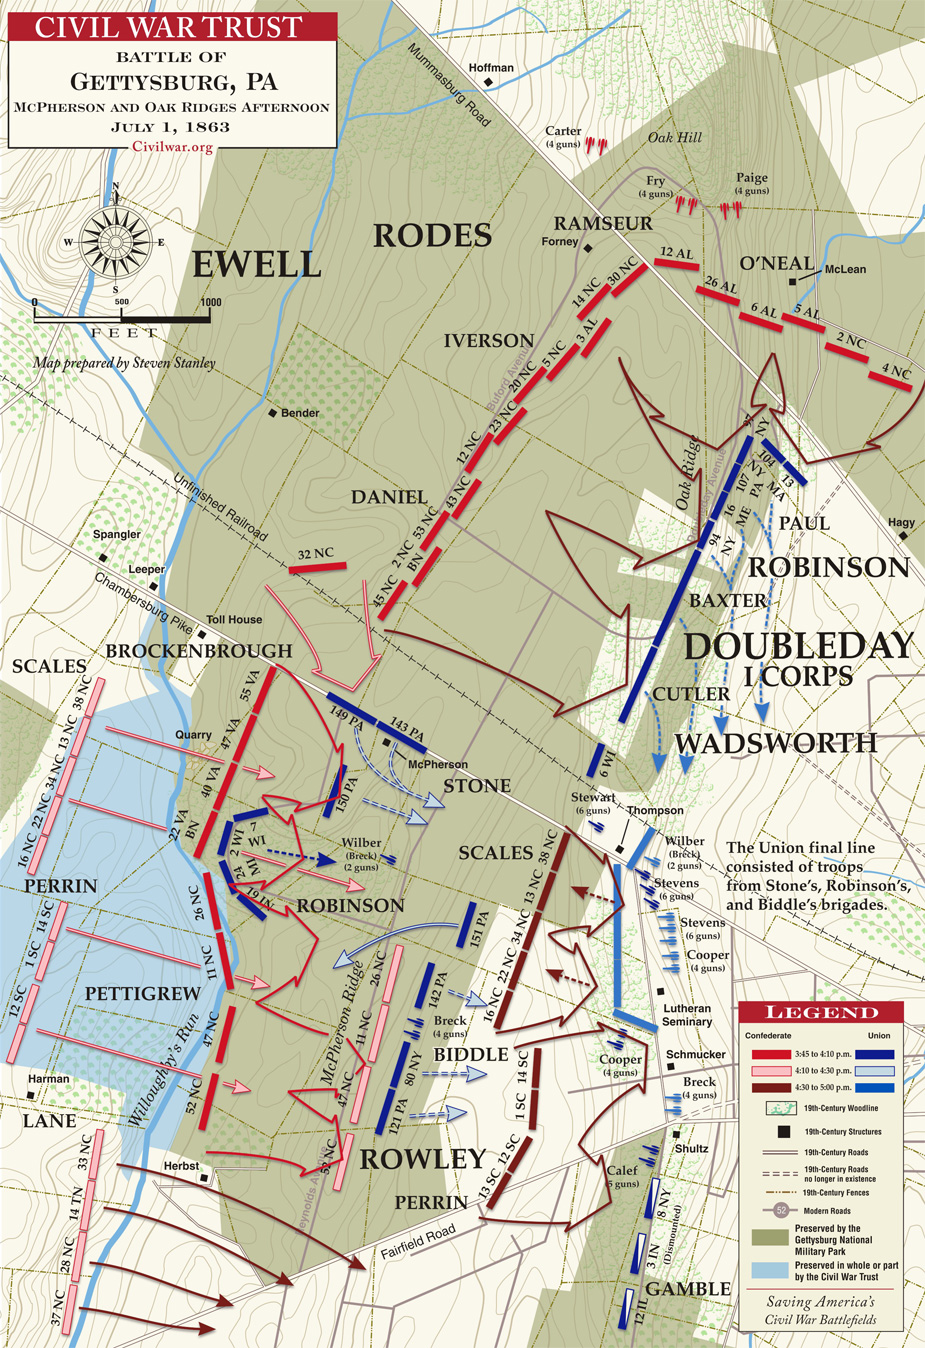 battle map courtesy of the civil war trust